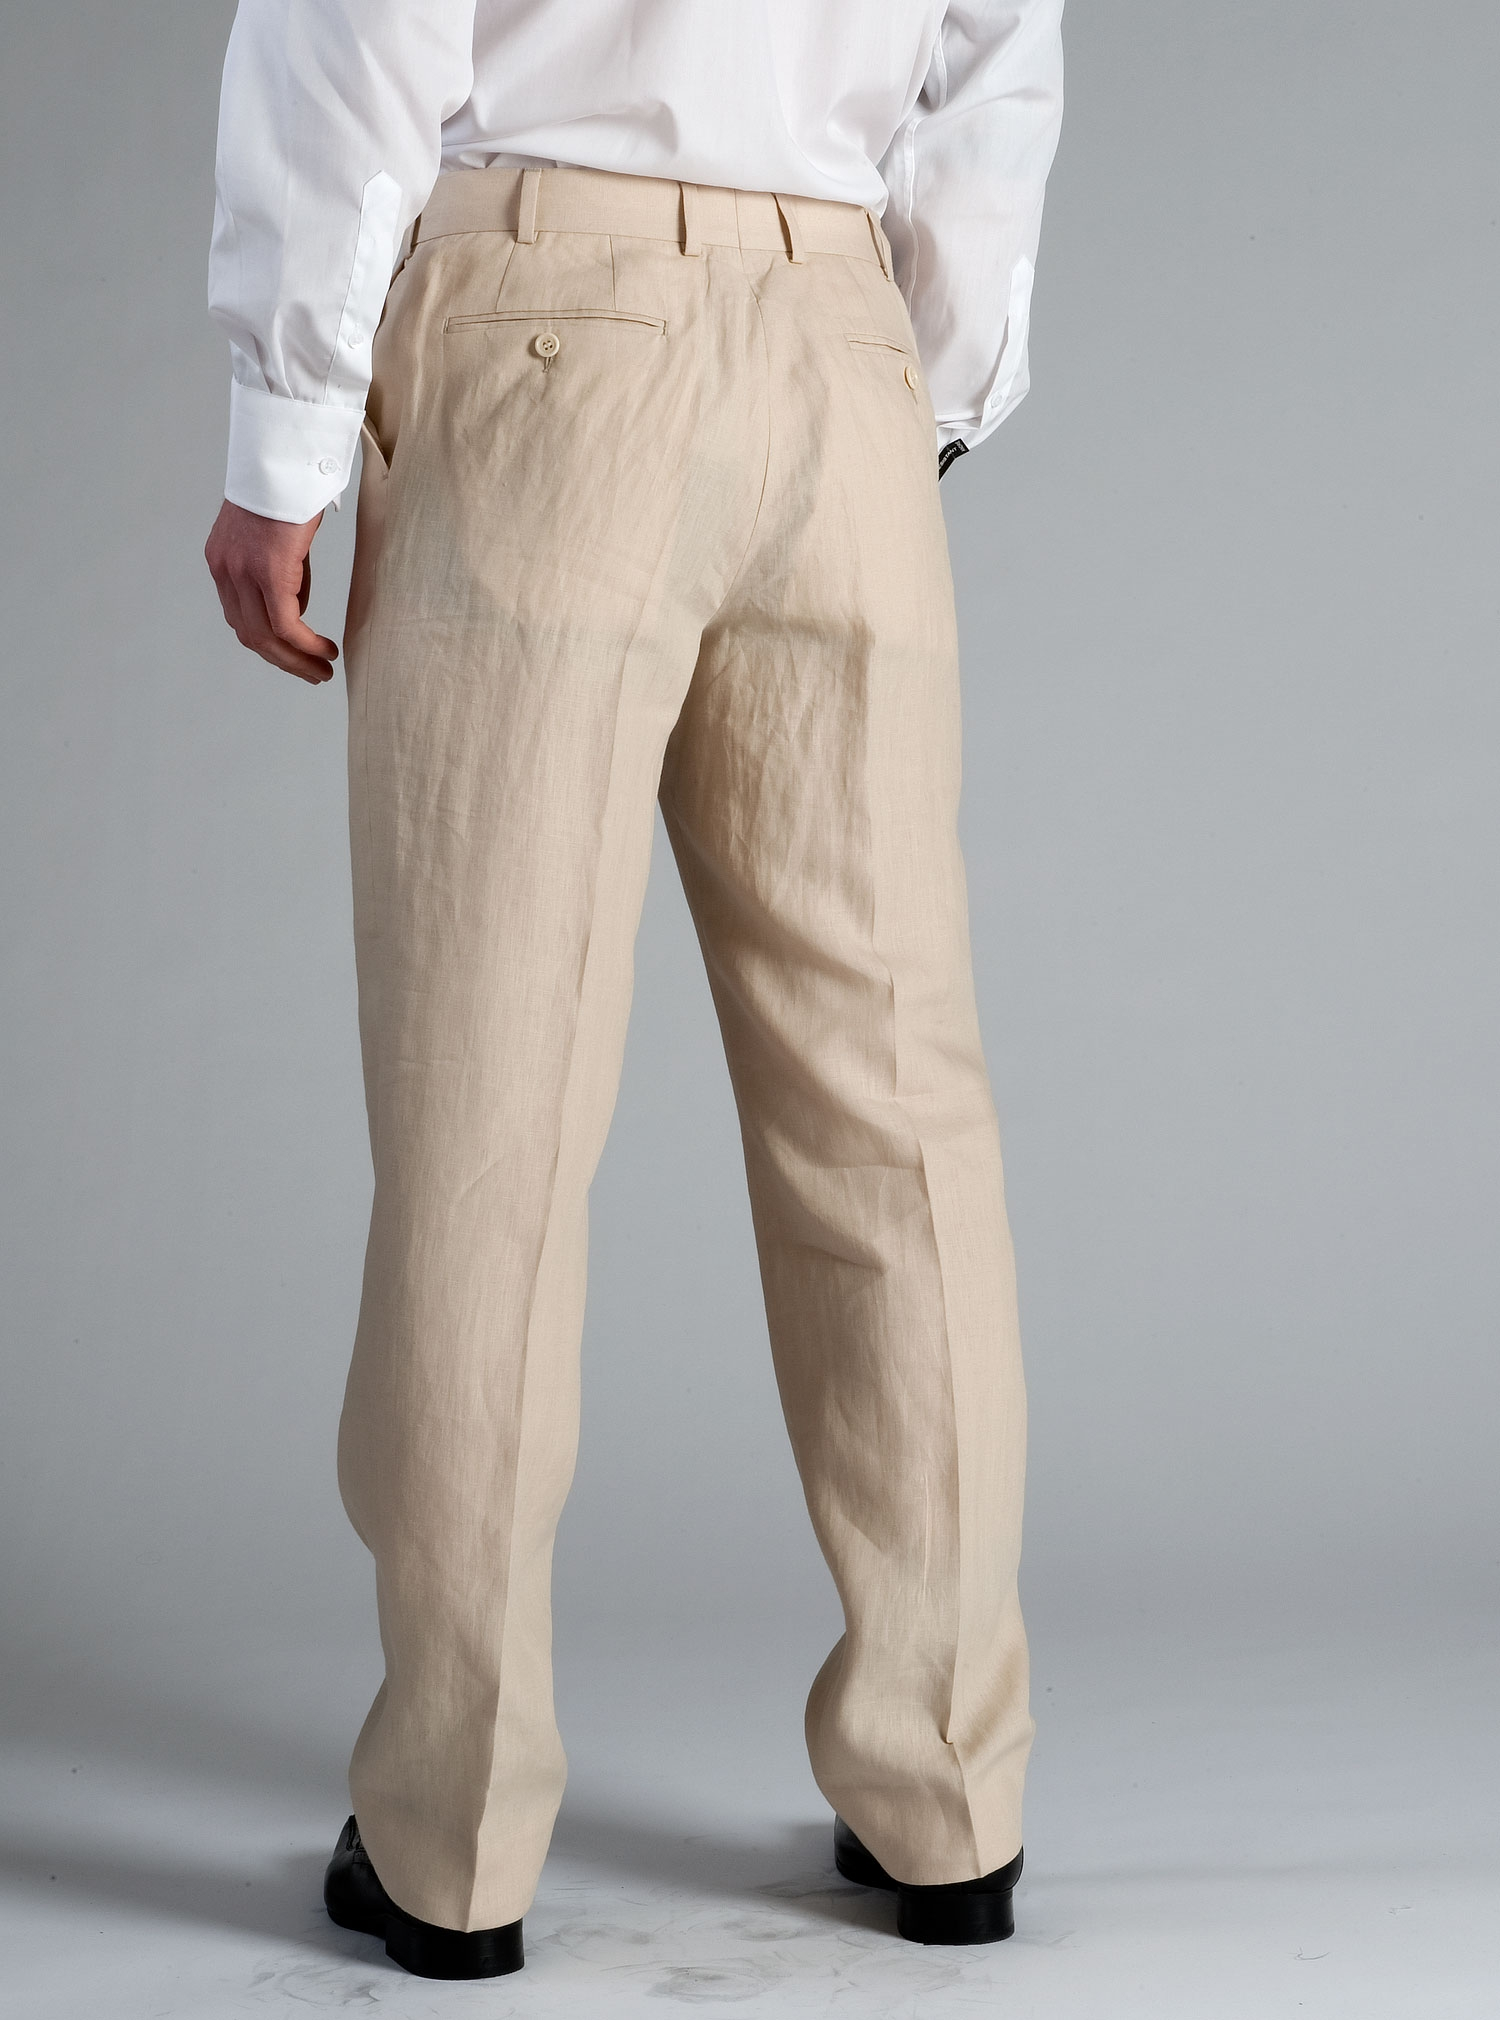 linen trousers ref:50261t didfkrc